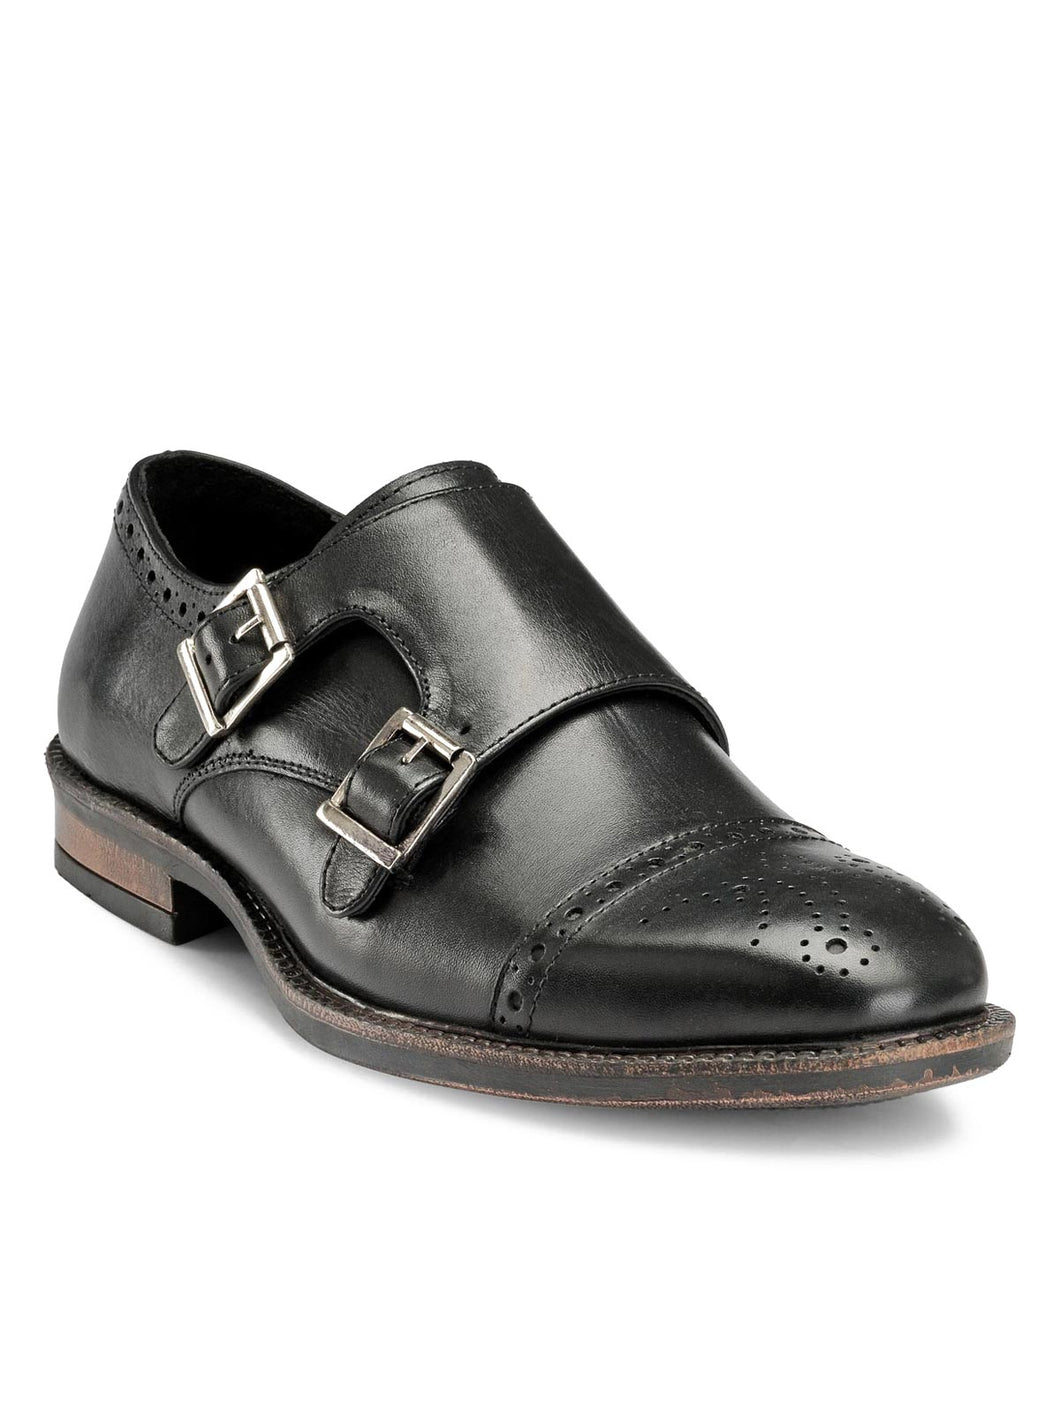 Teakwood Genuine Leather Monk Shoes